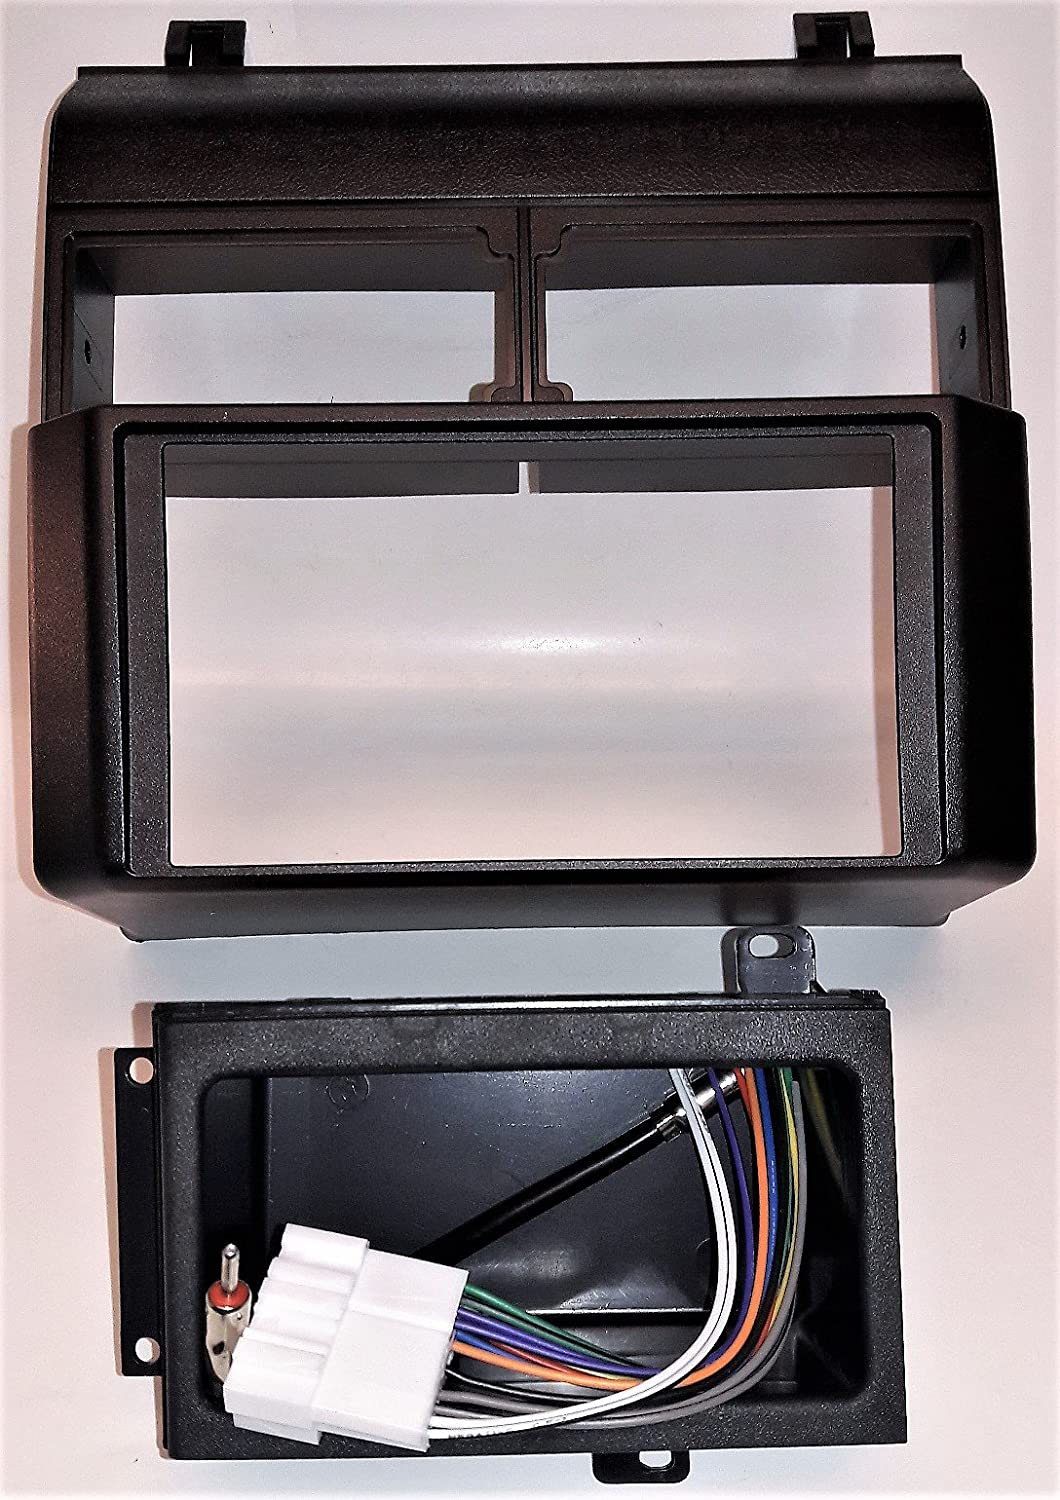 Double Din Dash Kit Harness Antenna Adapter And Pocket 1992 Gmc Yukon Wiring For Installing A New Radio Into Chevrolet Full Size Blazer 92 94